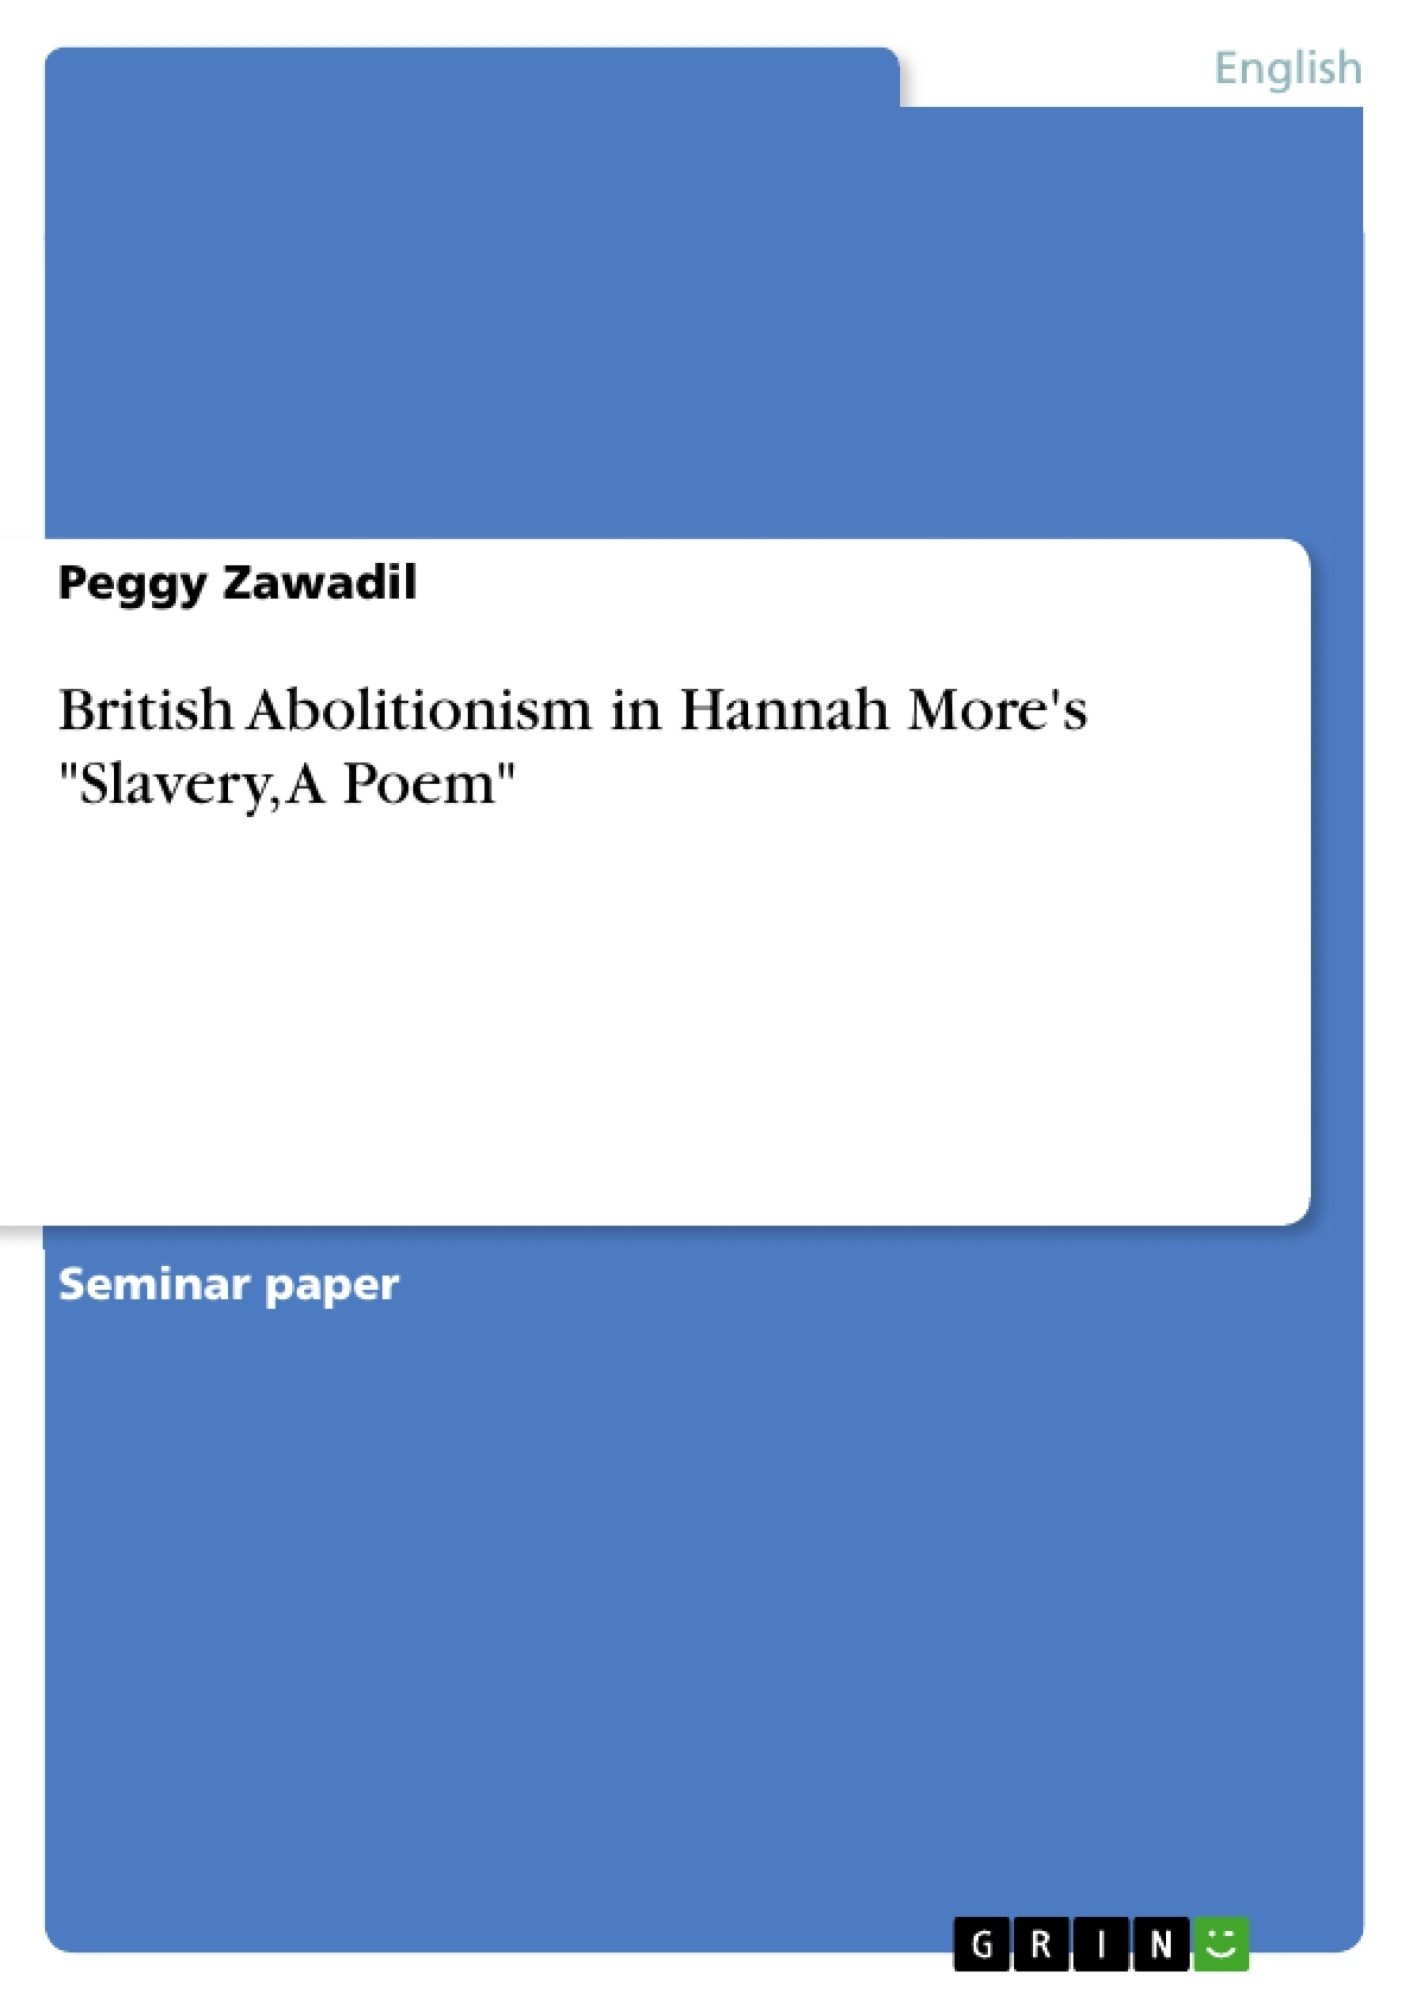 """Title: British Abolitionism in Hannah More's """"Slavery, A Poem"""""""